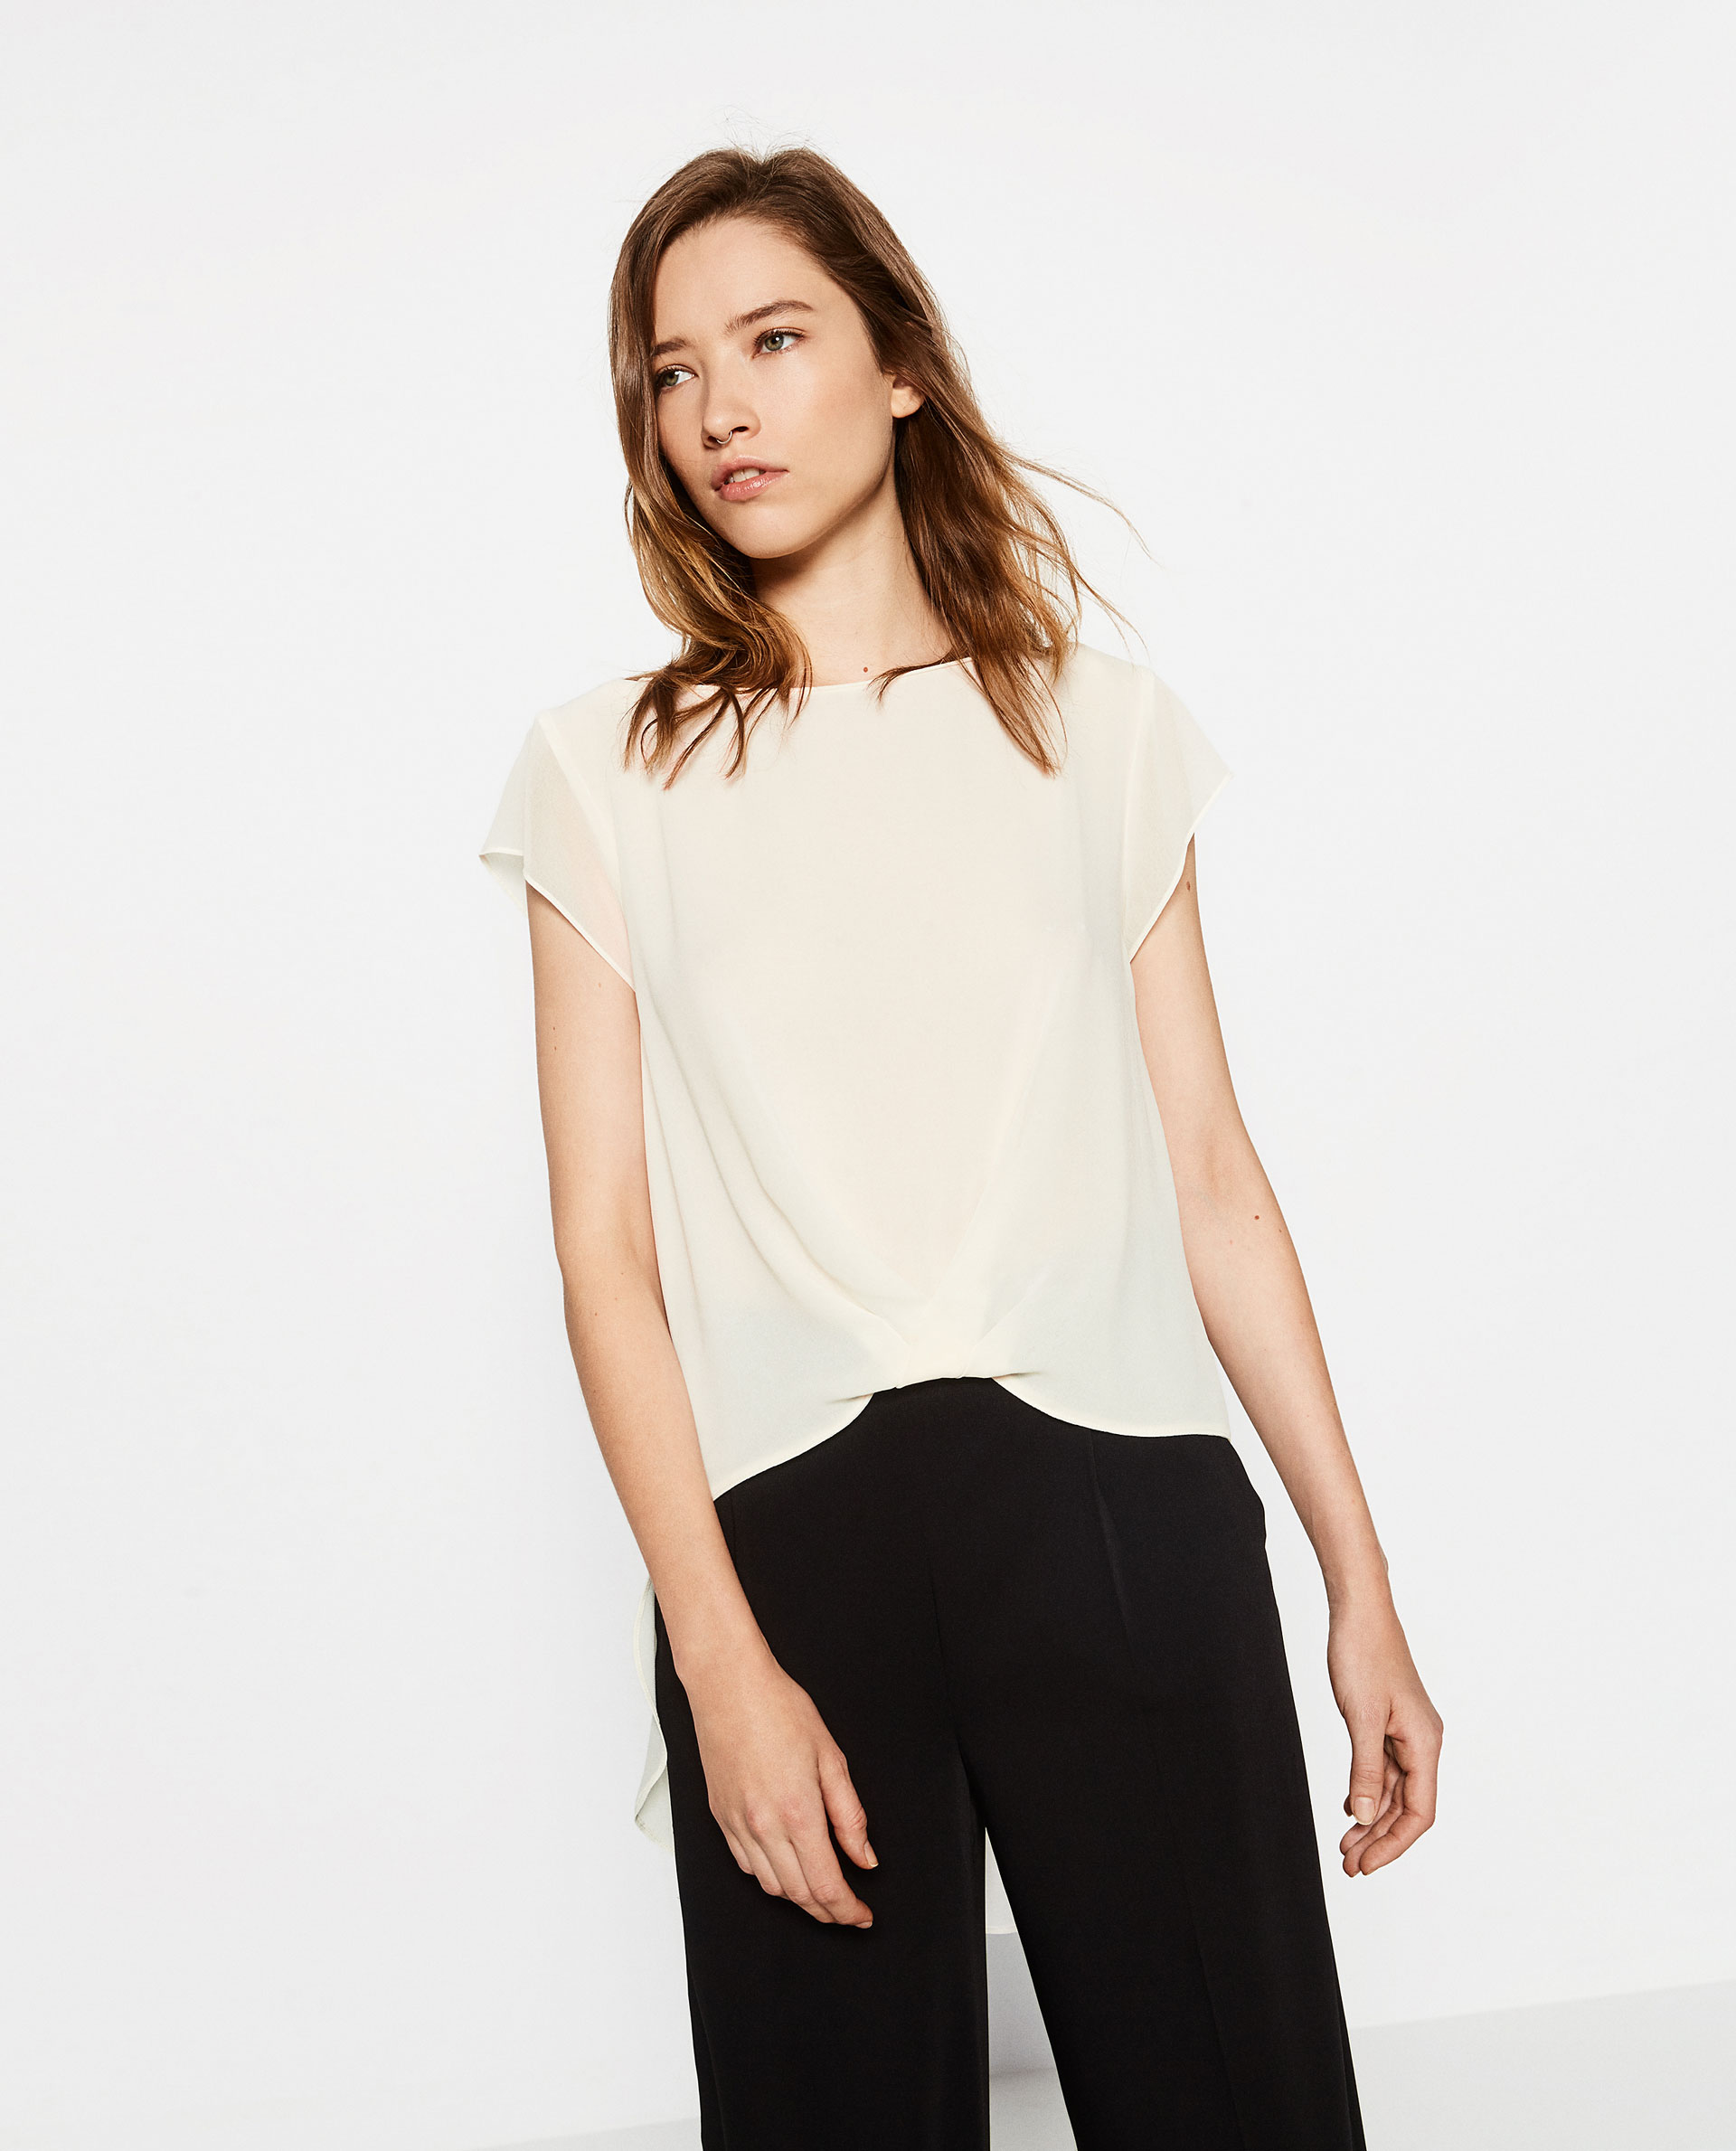 zara, top, off white